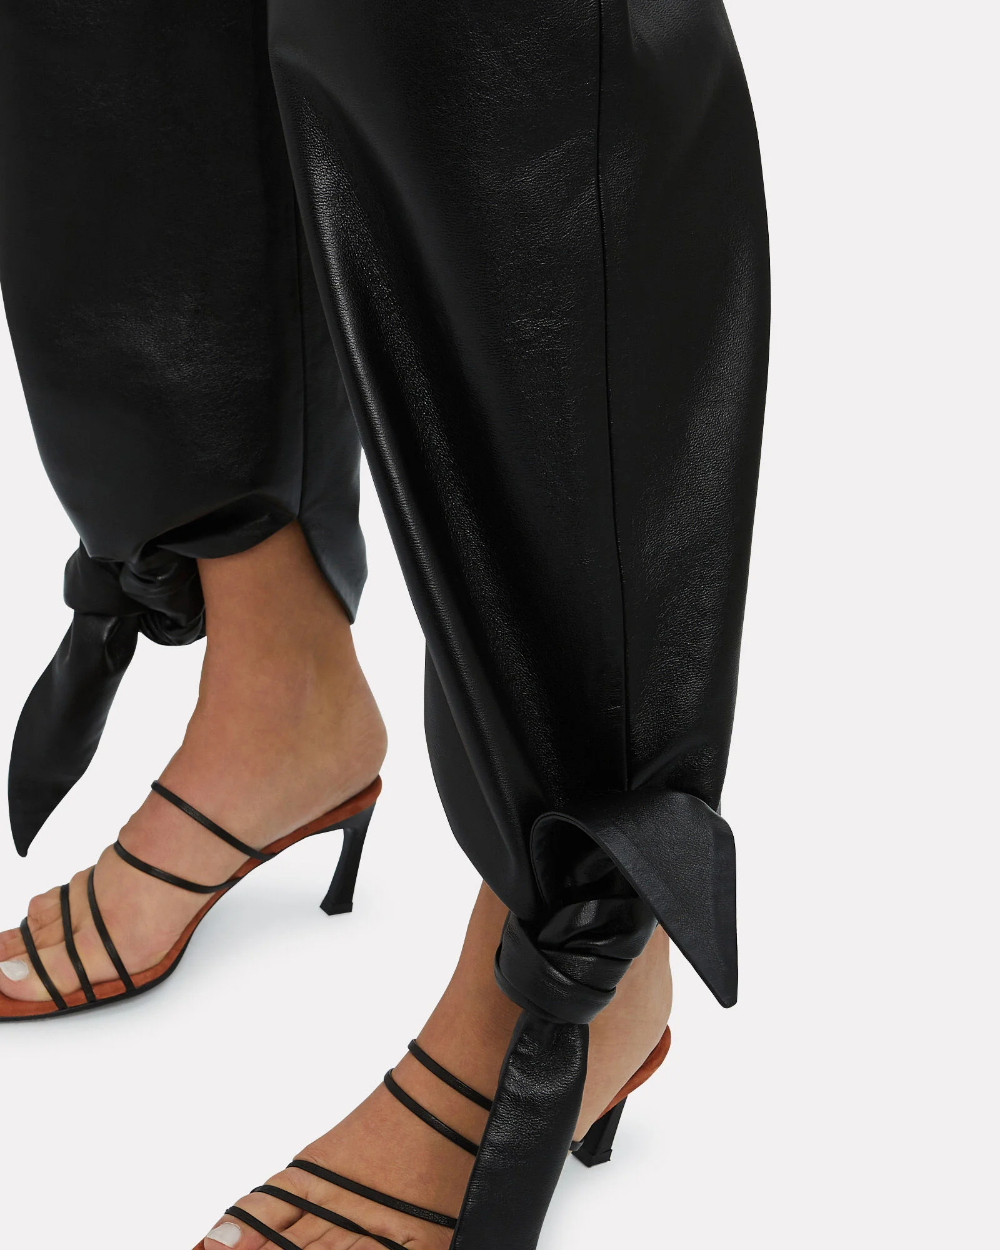 Vegan Leather Tie Ankle Pants In 2020 Ankle Pants Vegan Leather Pants